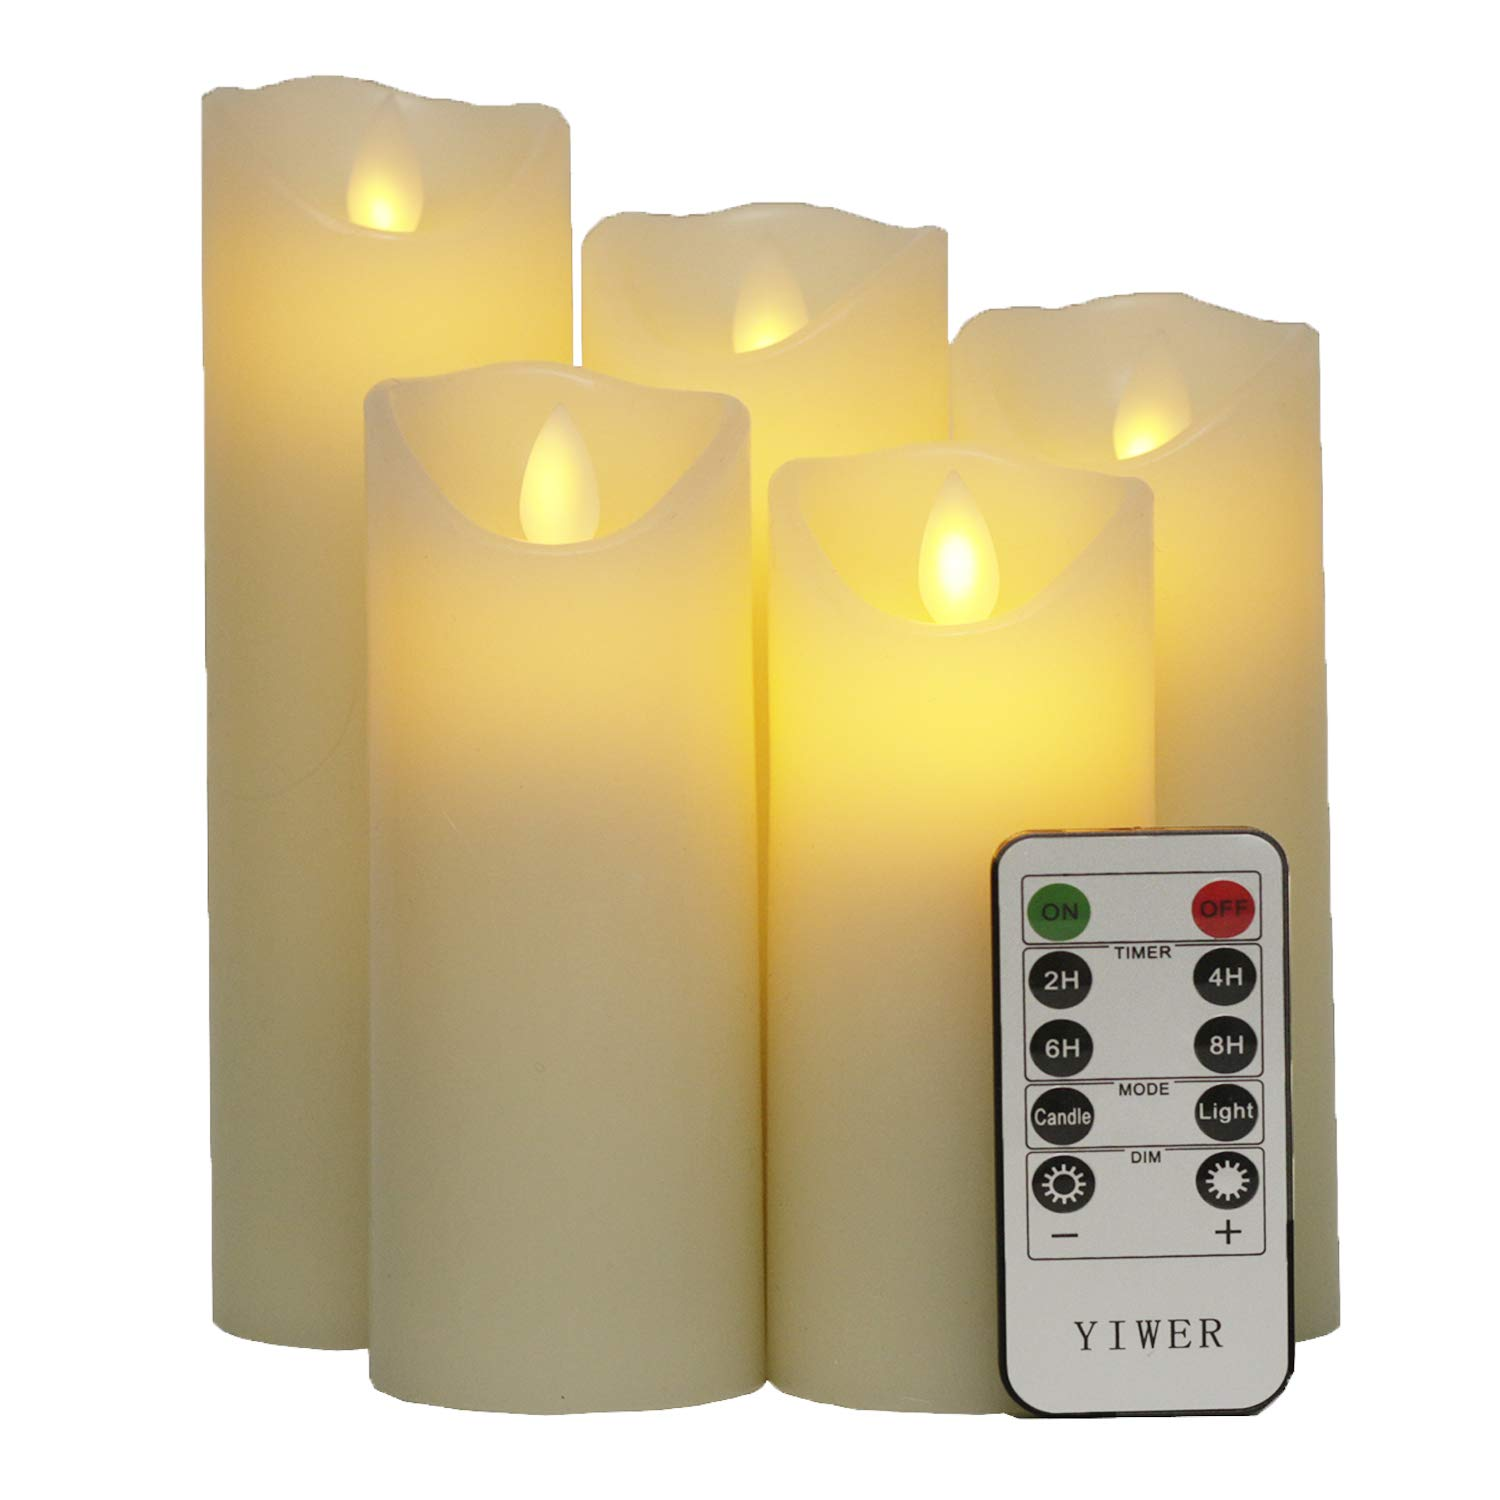 Flameless Candles, 5'' 6'' 7'' 8'' 9'' Set of 5 Real Wax Not Plastic Pillars Include Realistic Dancing LED Flames and 10-key Remote Control with 2/4/6/8-hours Timer Function,300+ Hours -YIWER (5x1, Ivory)